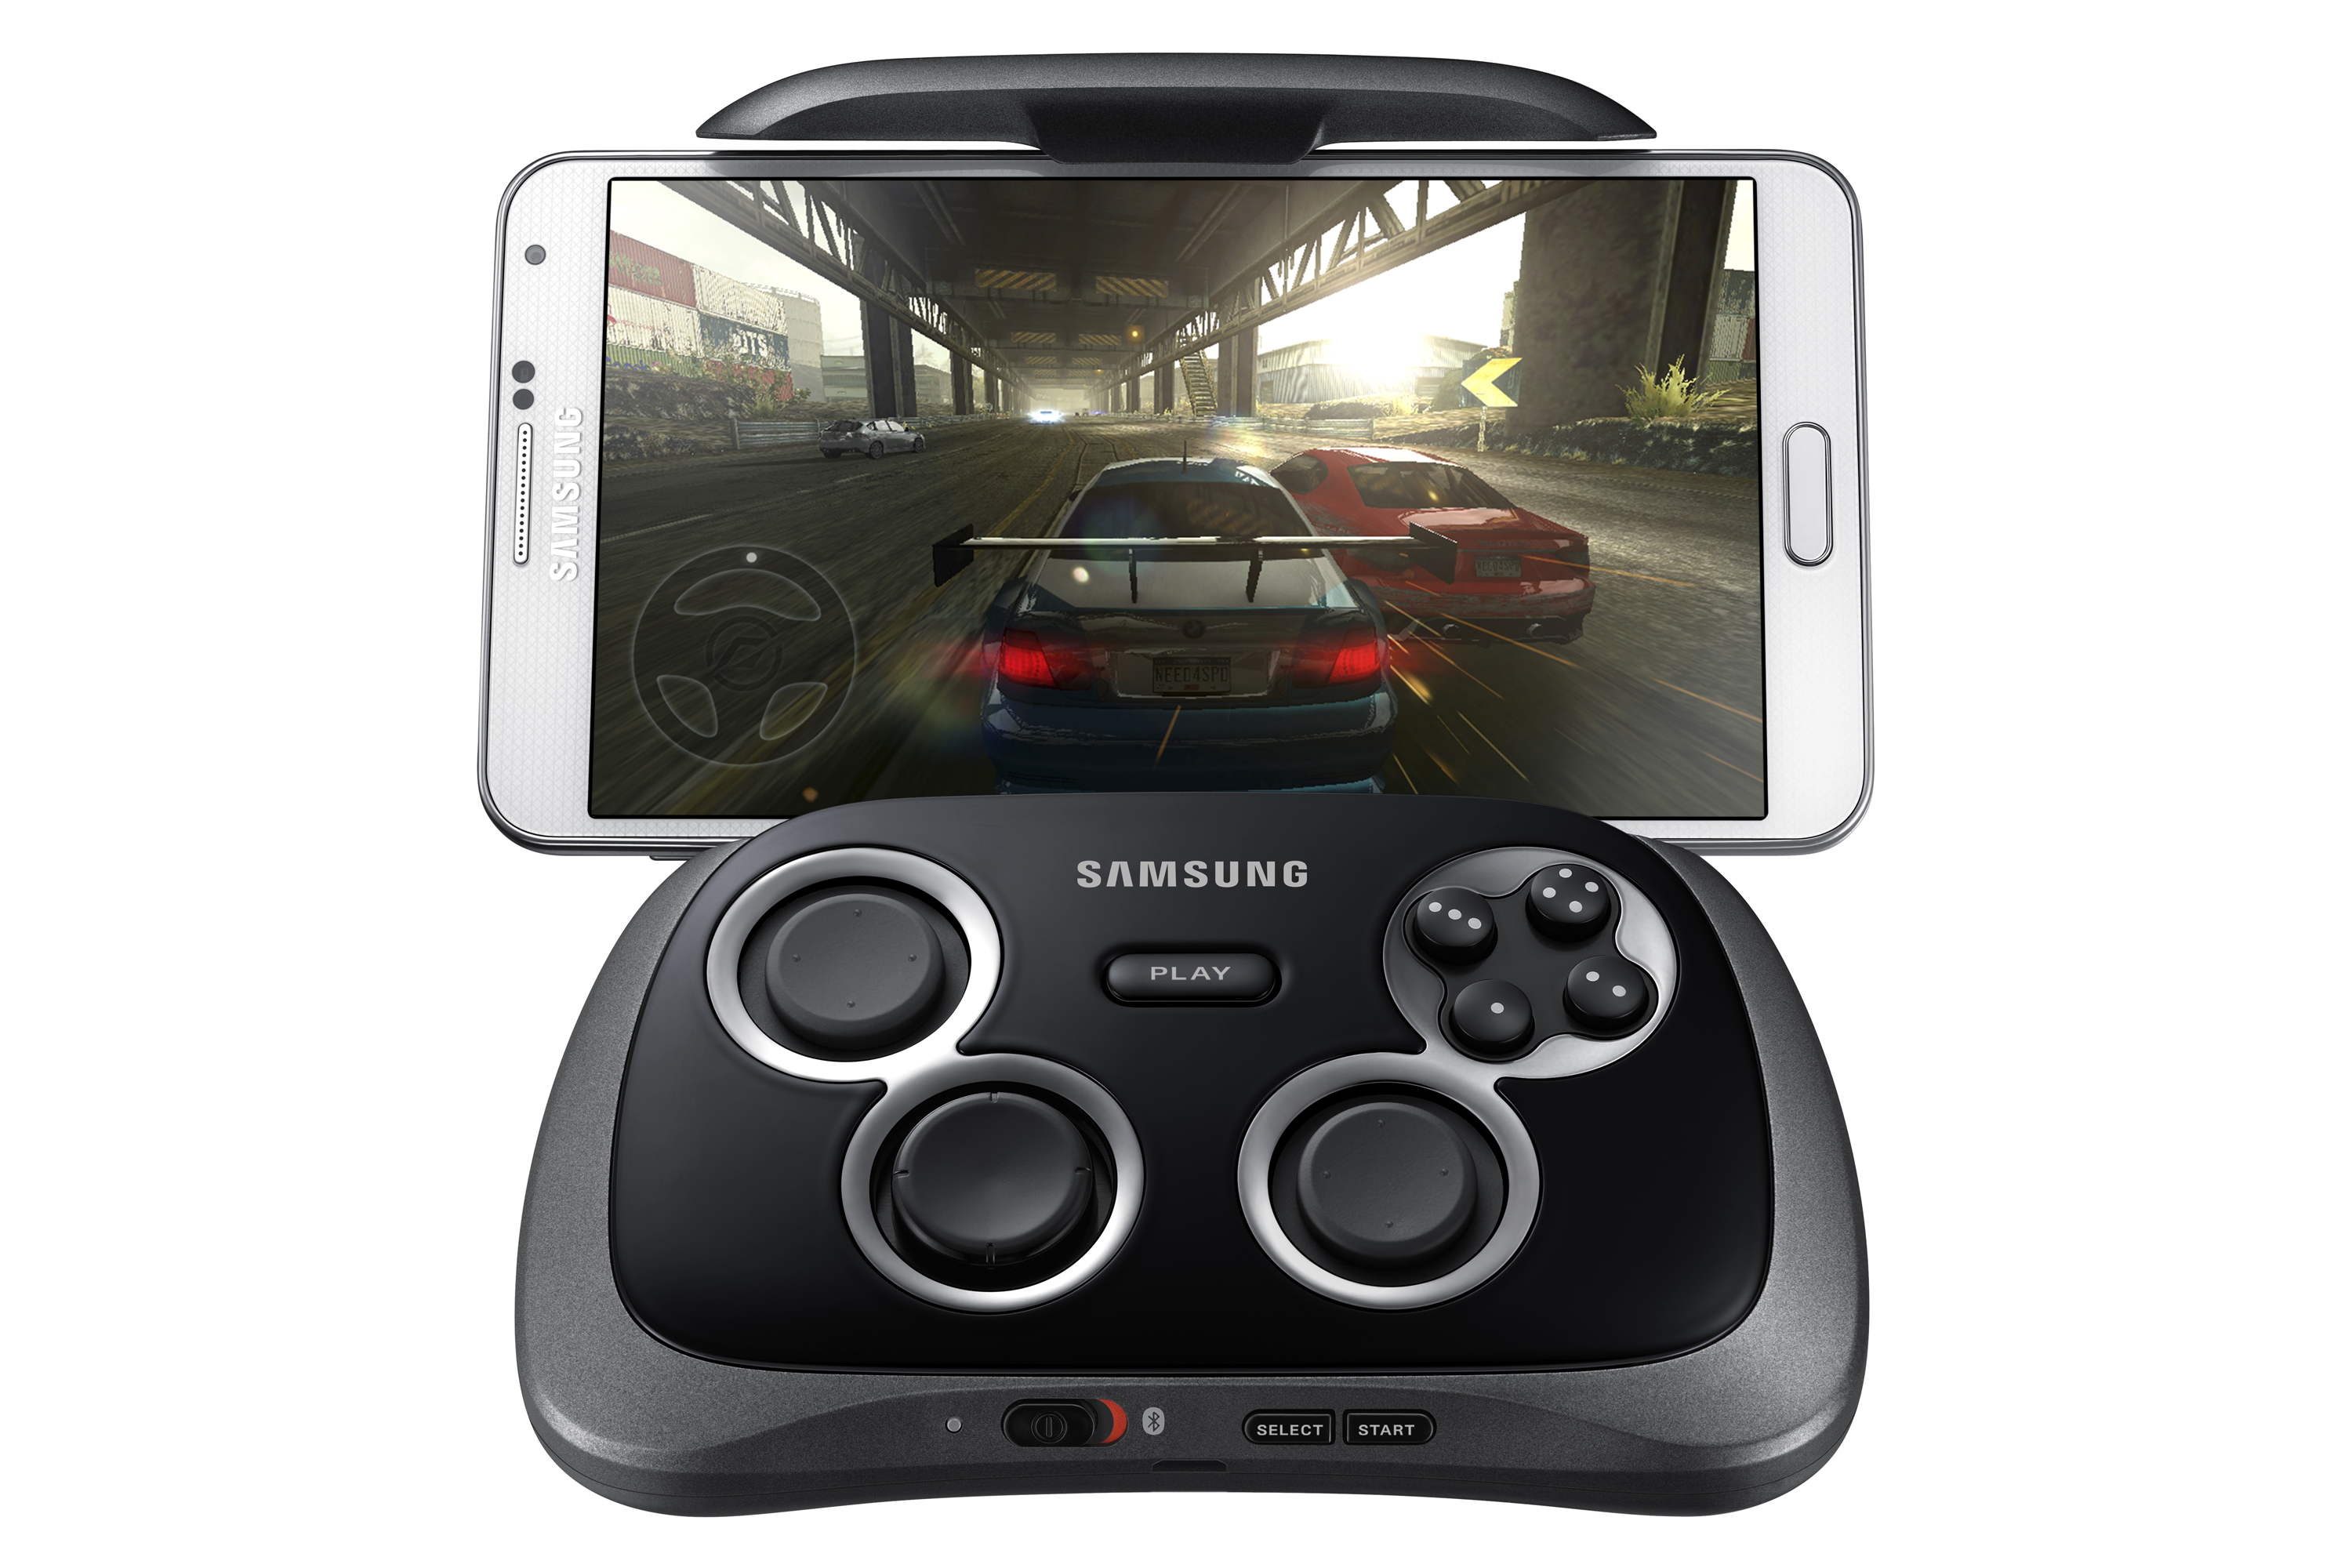 Samsung Android Games